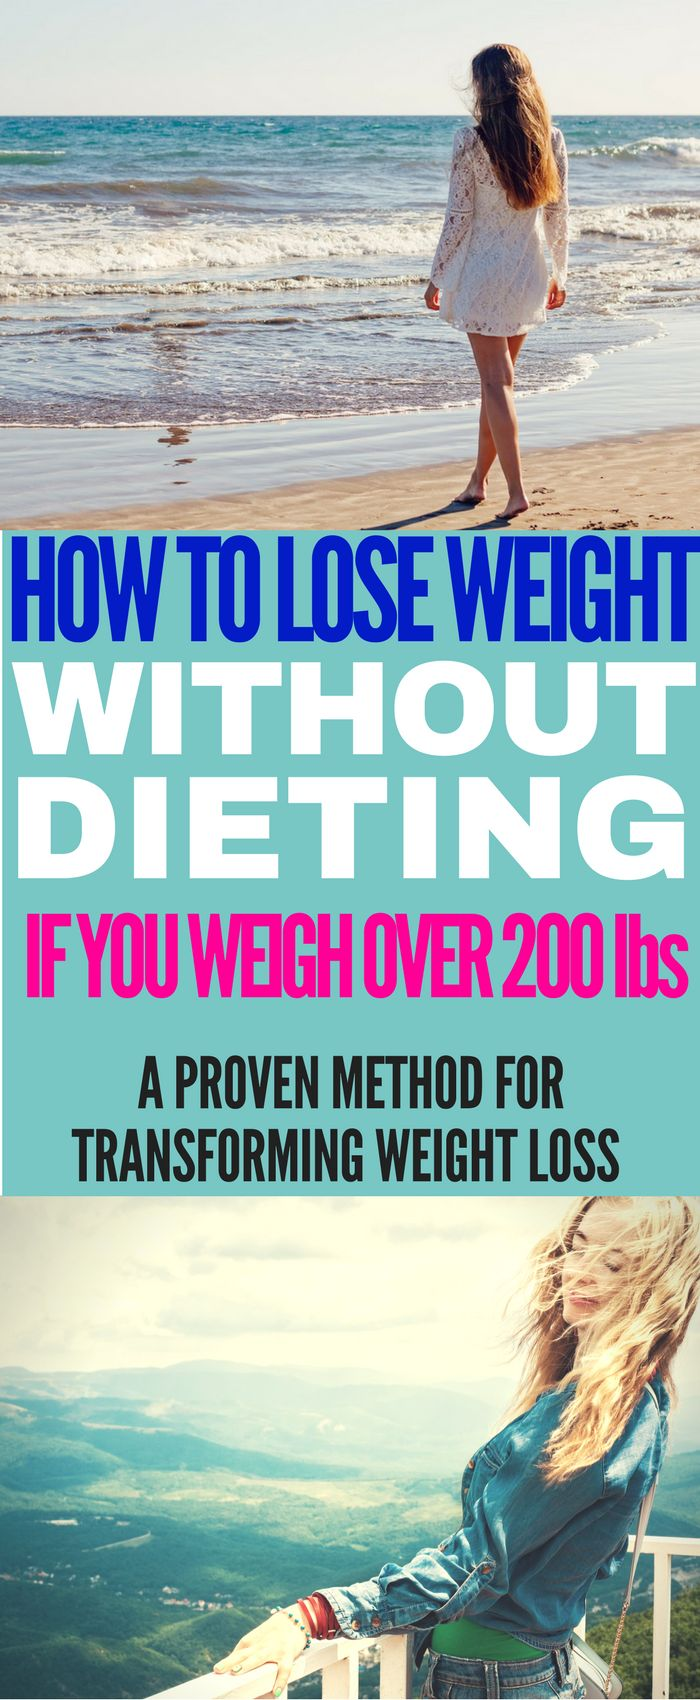 lose weight by stopping your diet! It's Ruining Your Diet! Have you tried every diet under the sun? If you weigh over 200 pounds and you feel like you are at your wits end with trying to lose weight, and having it backfire on you over and over again, then this article is for you.